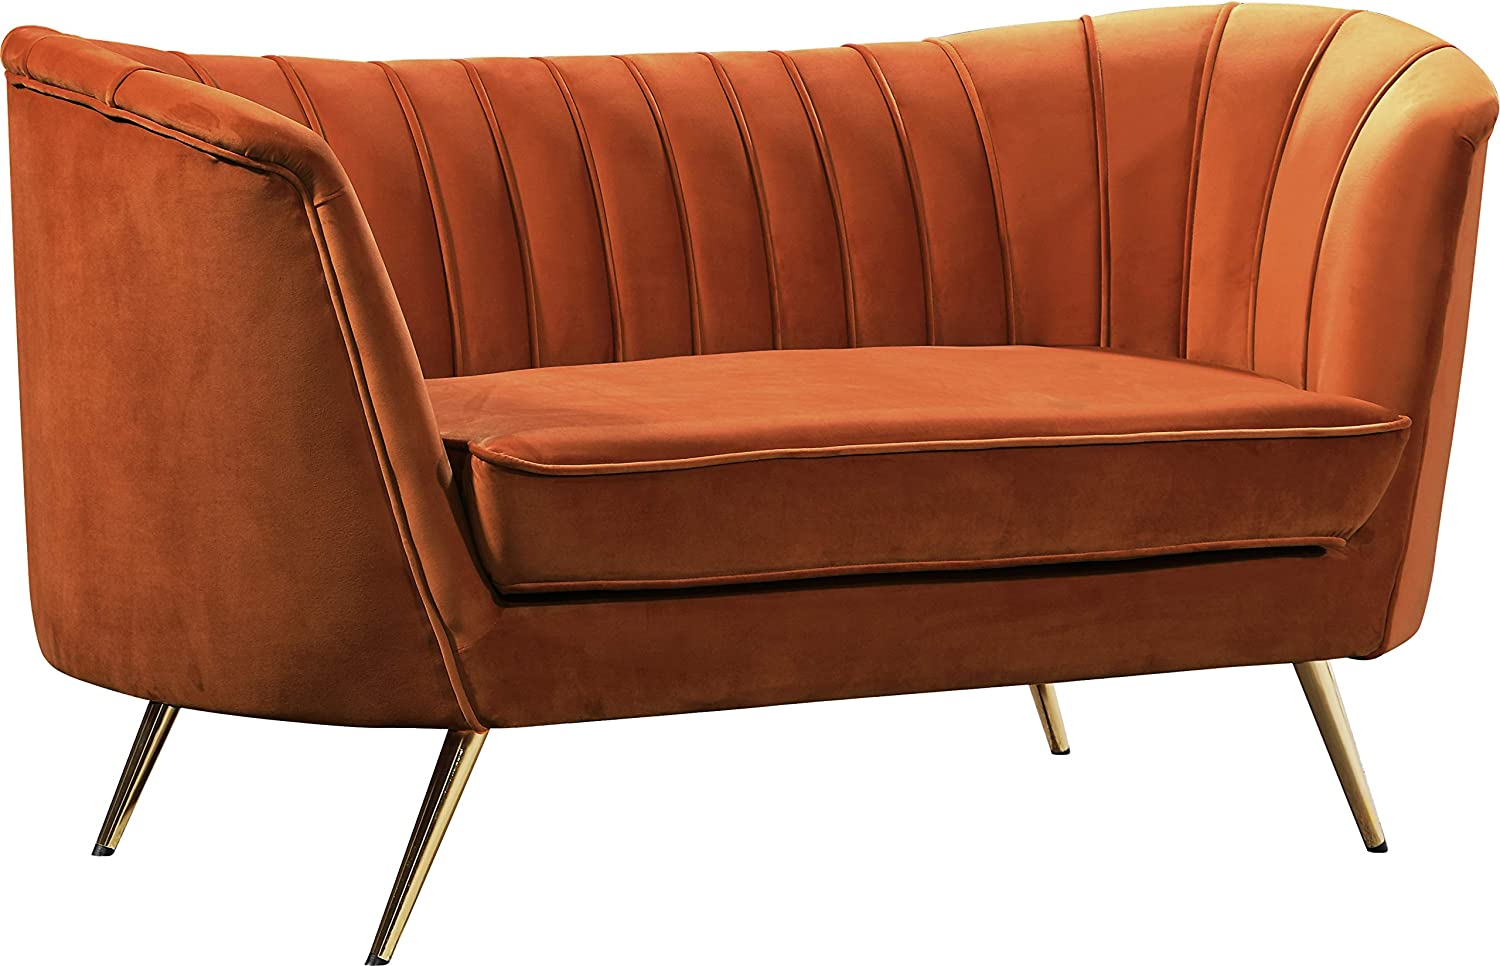 Meridian Furniture Margo Collection Modern | Contemporary Velvet Upholstered Loveseat with Deep Channel Tufting and Rich Gold Stainless Steel Legs, Cognac, 65